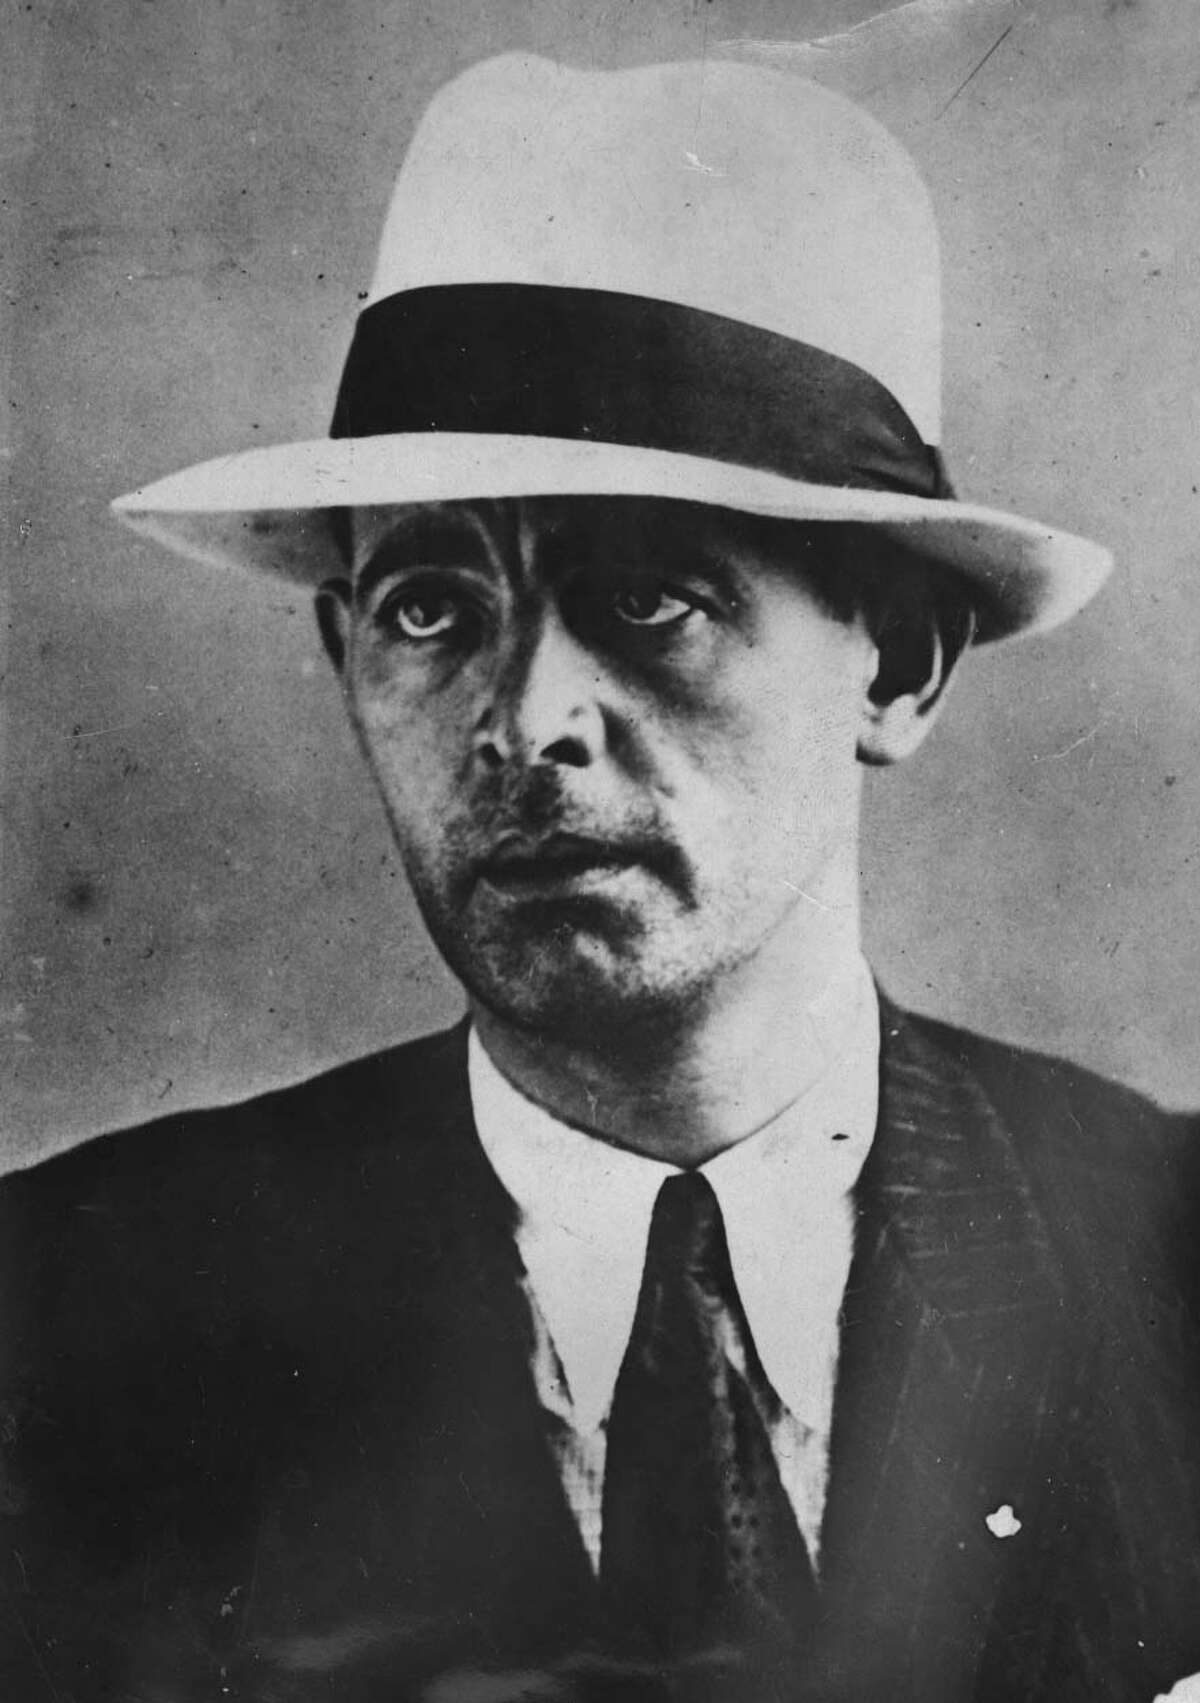 Jack ?Legs? Diamond - The notorious Depression-era gangster was gunned down in an Albany rooming house in 1931.